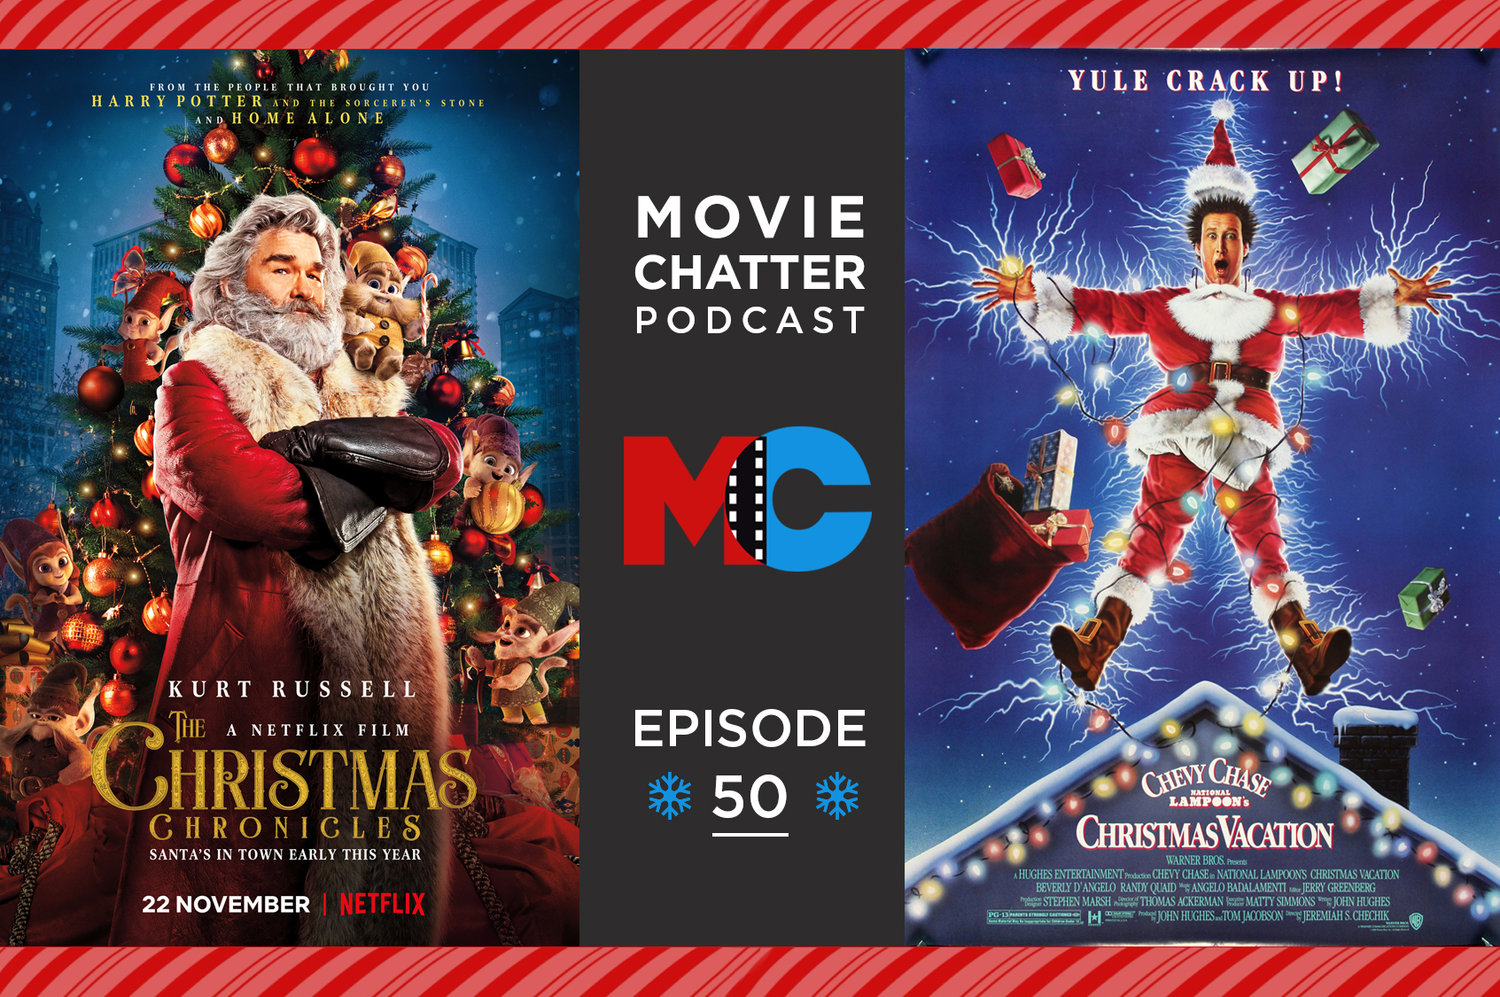 The Christmas Chronicles Poster.Episode 50 The Christmas Chronicles Christmas Vacation